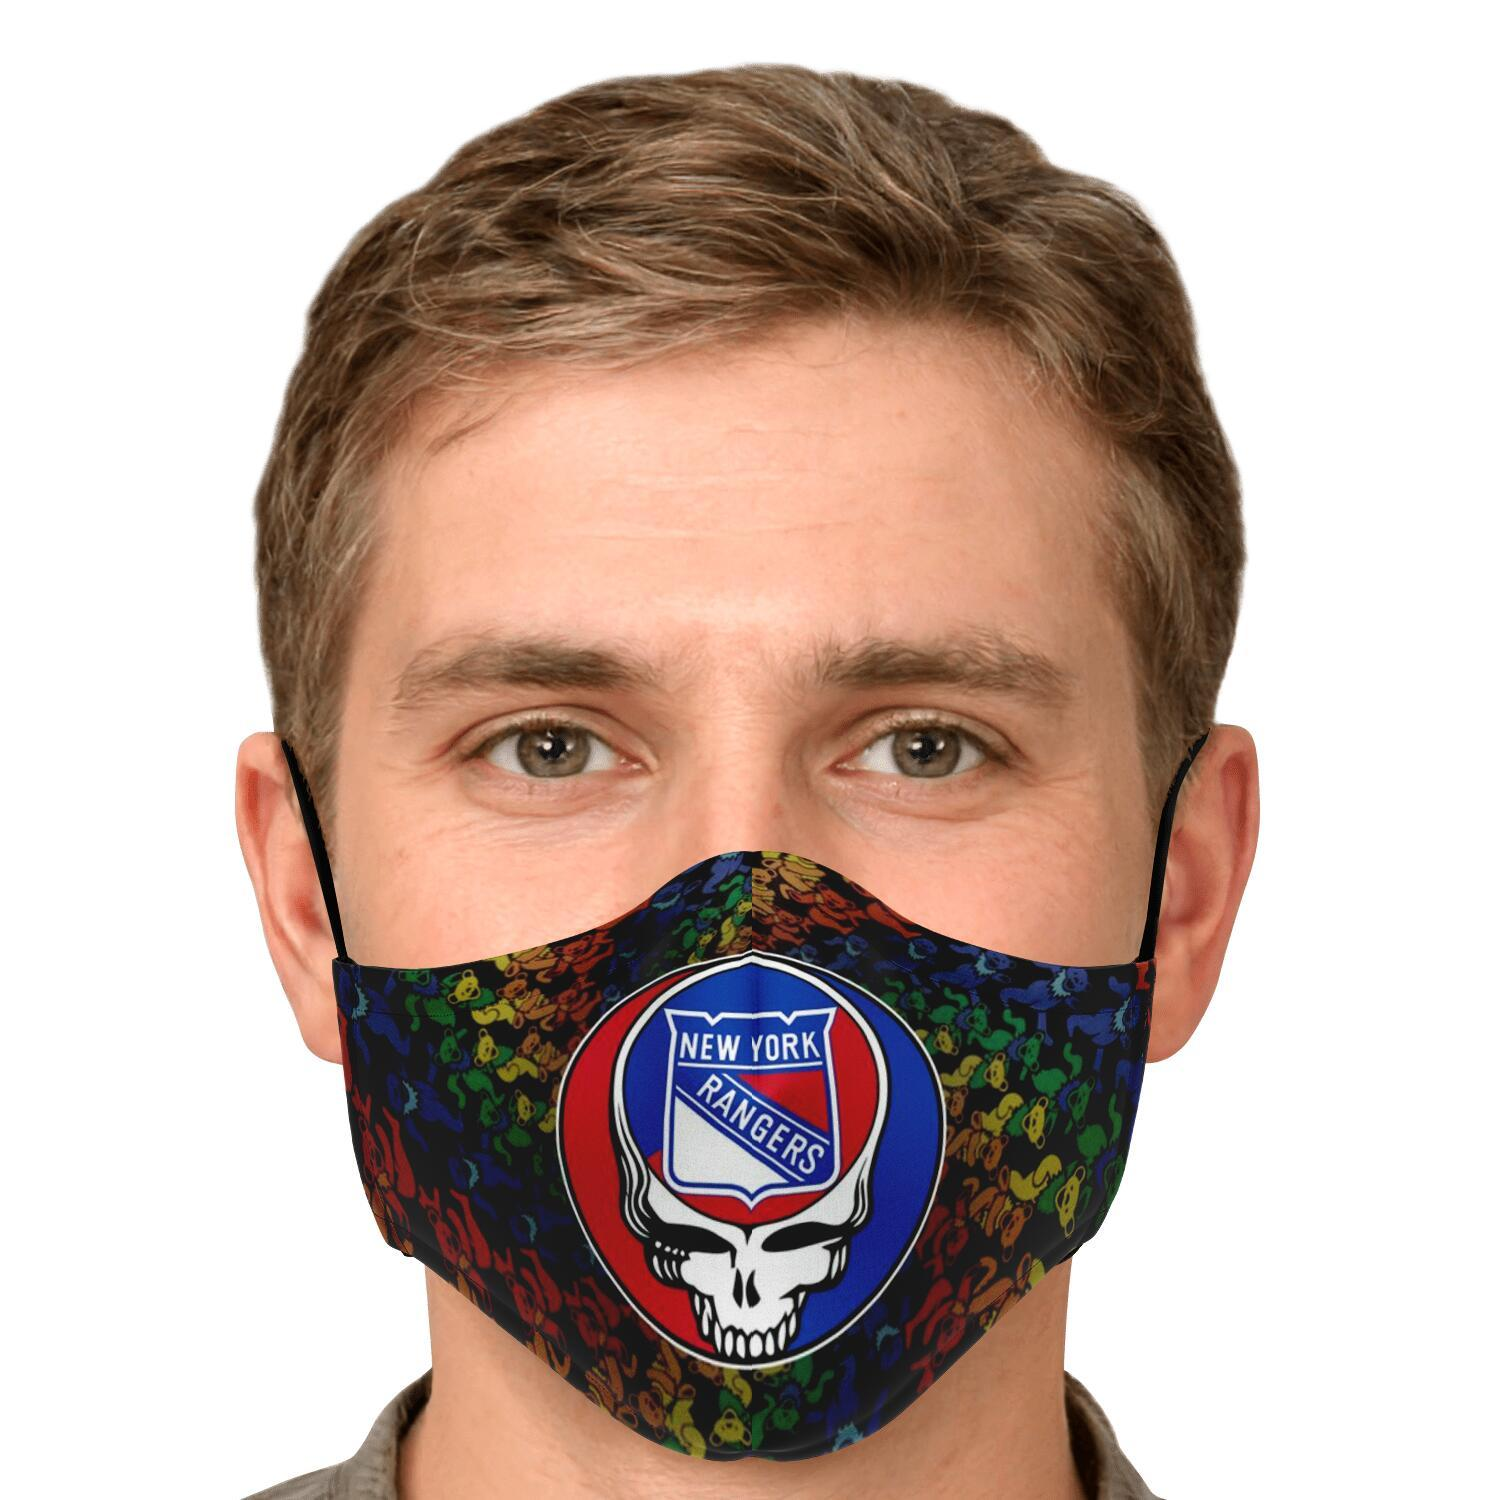 Steal Your Face Grateful Dead New York Rangers Face Mask 4